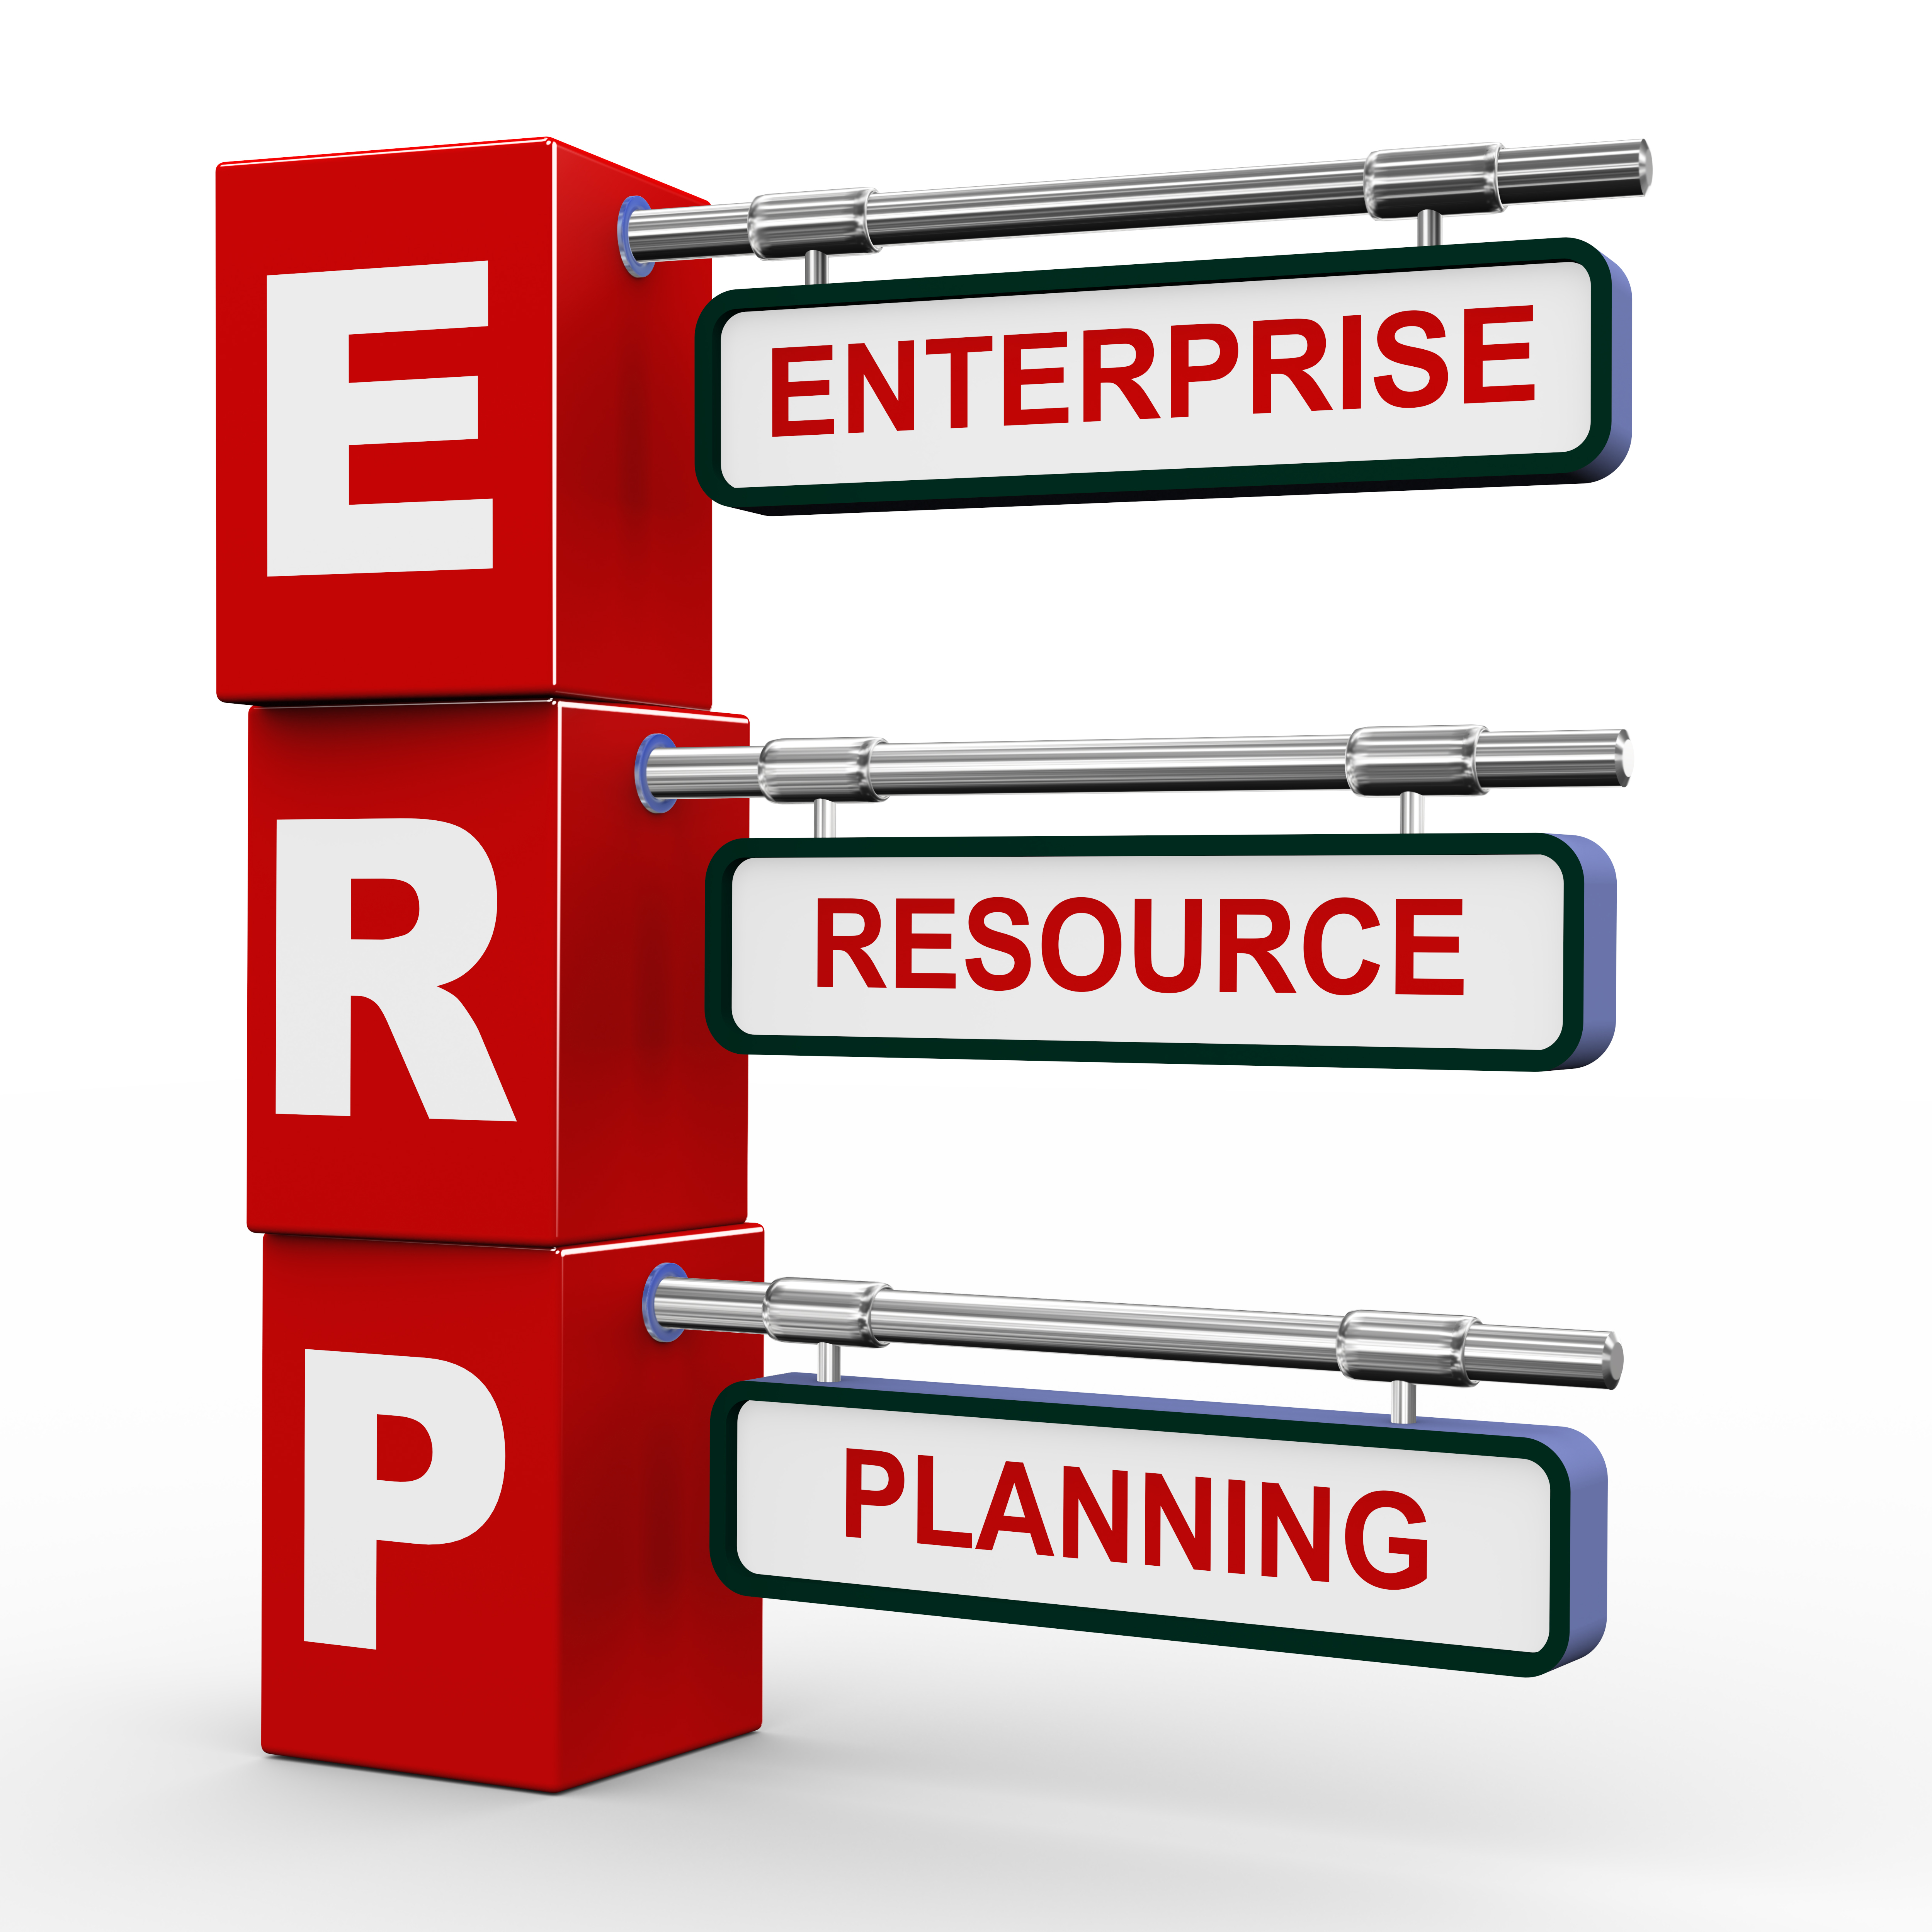 5 must-haves to buy the best ERP software (Part 1)